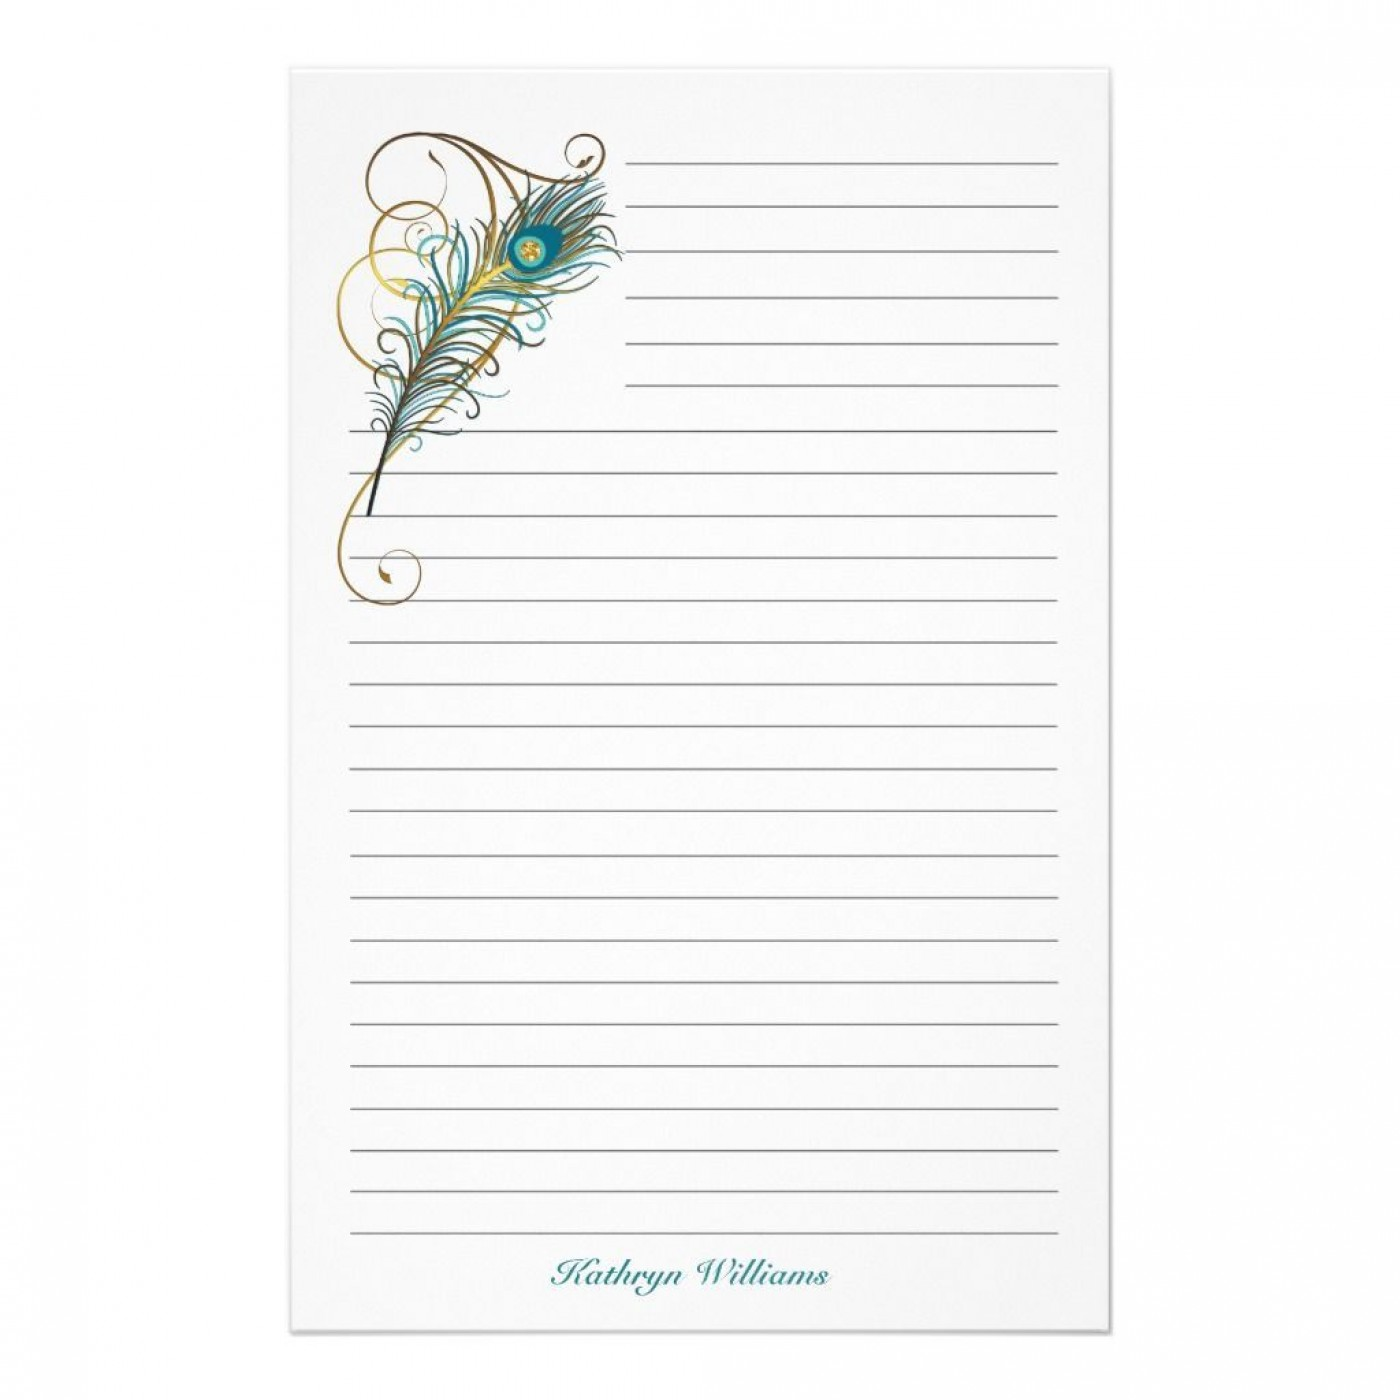 000 Marvelou Free Printable Stationery Paper Template Example 1400